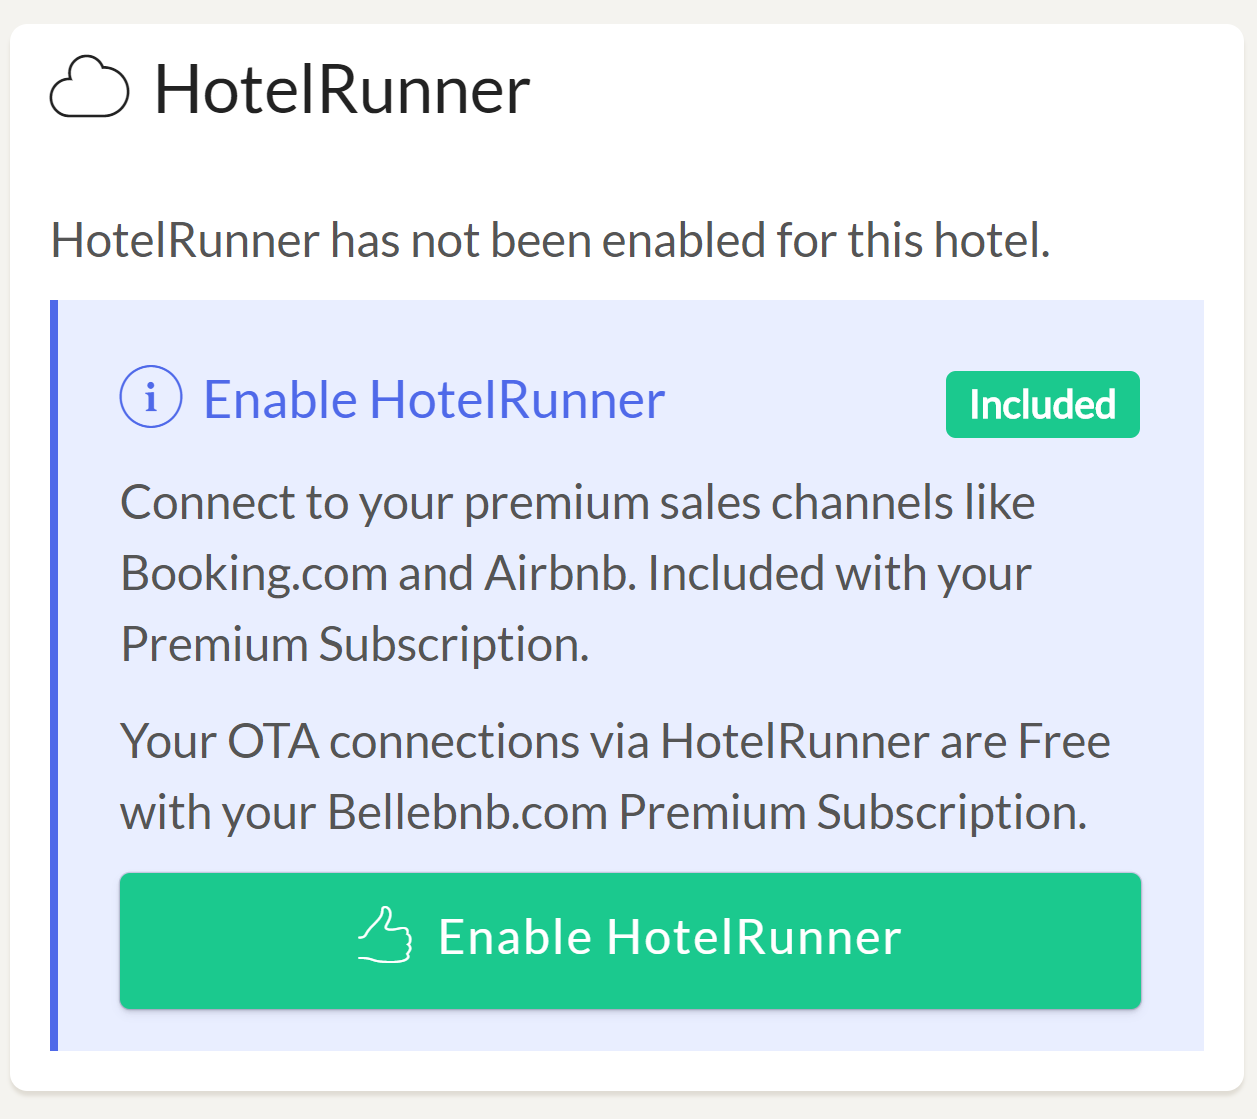 Enable HotelRunner